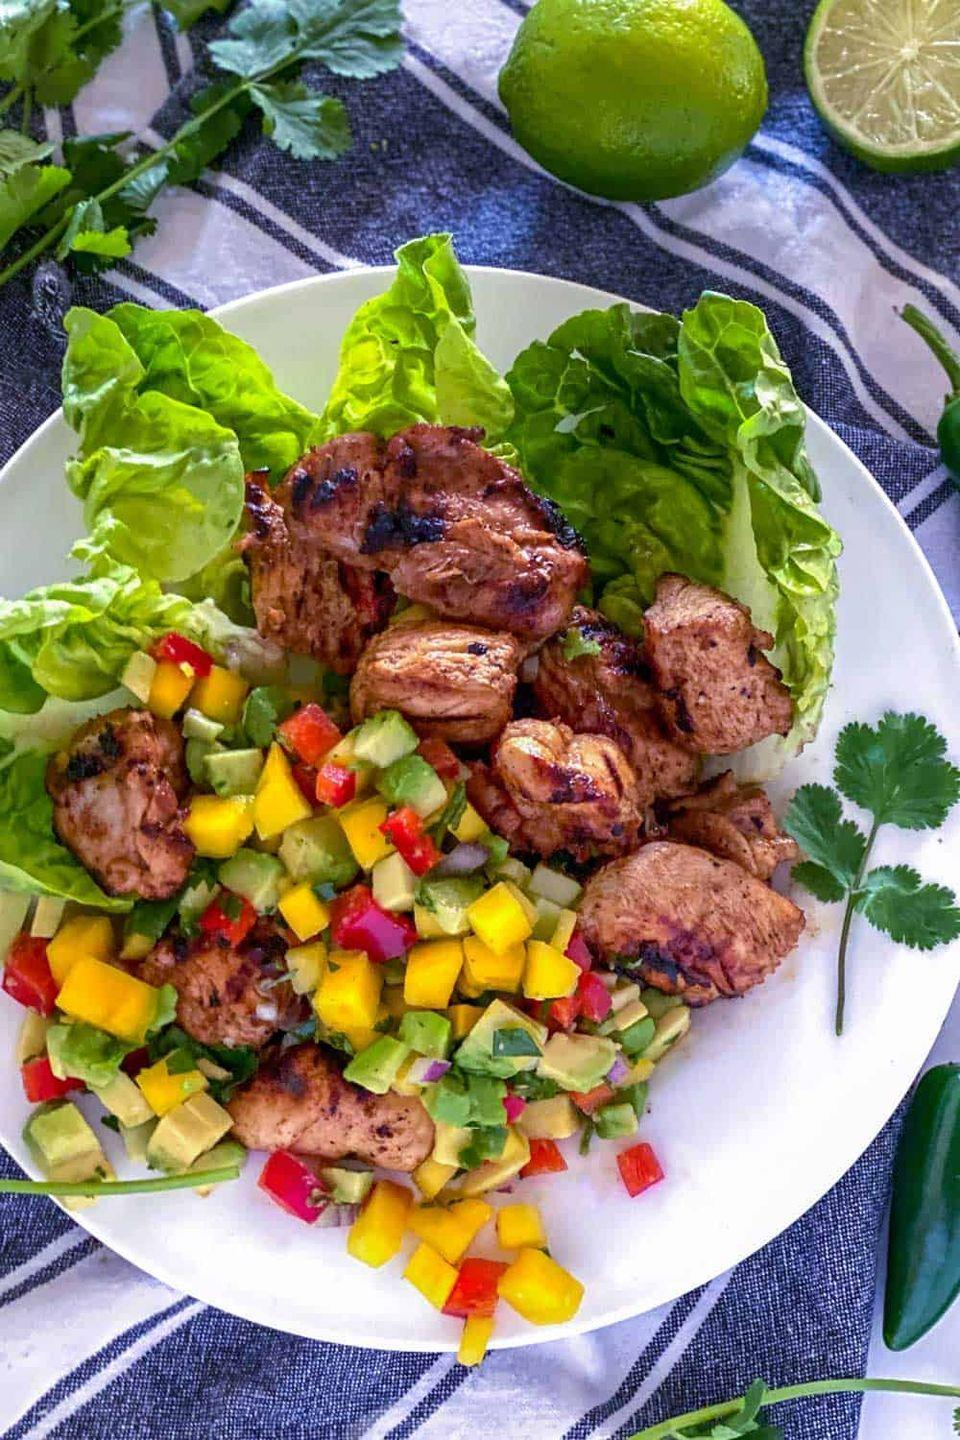 """<p>You'll fire up the grill in the dead of winter to make this tropical-vibed chicken. </p><p><a class=""""link rapid-noclick-resp"""" href=""""https://www.panningtheglobe.com/mexican-spiced-grilled-chicken-nectarine-salsa/"""" rel=""""nofollow noopener"""" target=""""_blank"""" data-ylk=""""slk:GET THE RECIPE"""">GET THE RECIPE</a> </p><p><em>Per serving: 351 calories, 12.8 g fat (2.1 g saturated), 890.2 mg sodium, 23.2 g carbs, 4.3 g fiber, 10 g sugar, 37.2 g protein</em></p>"""